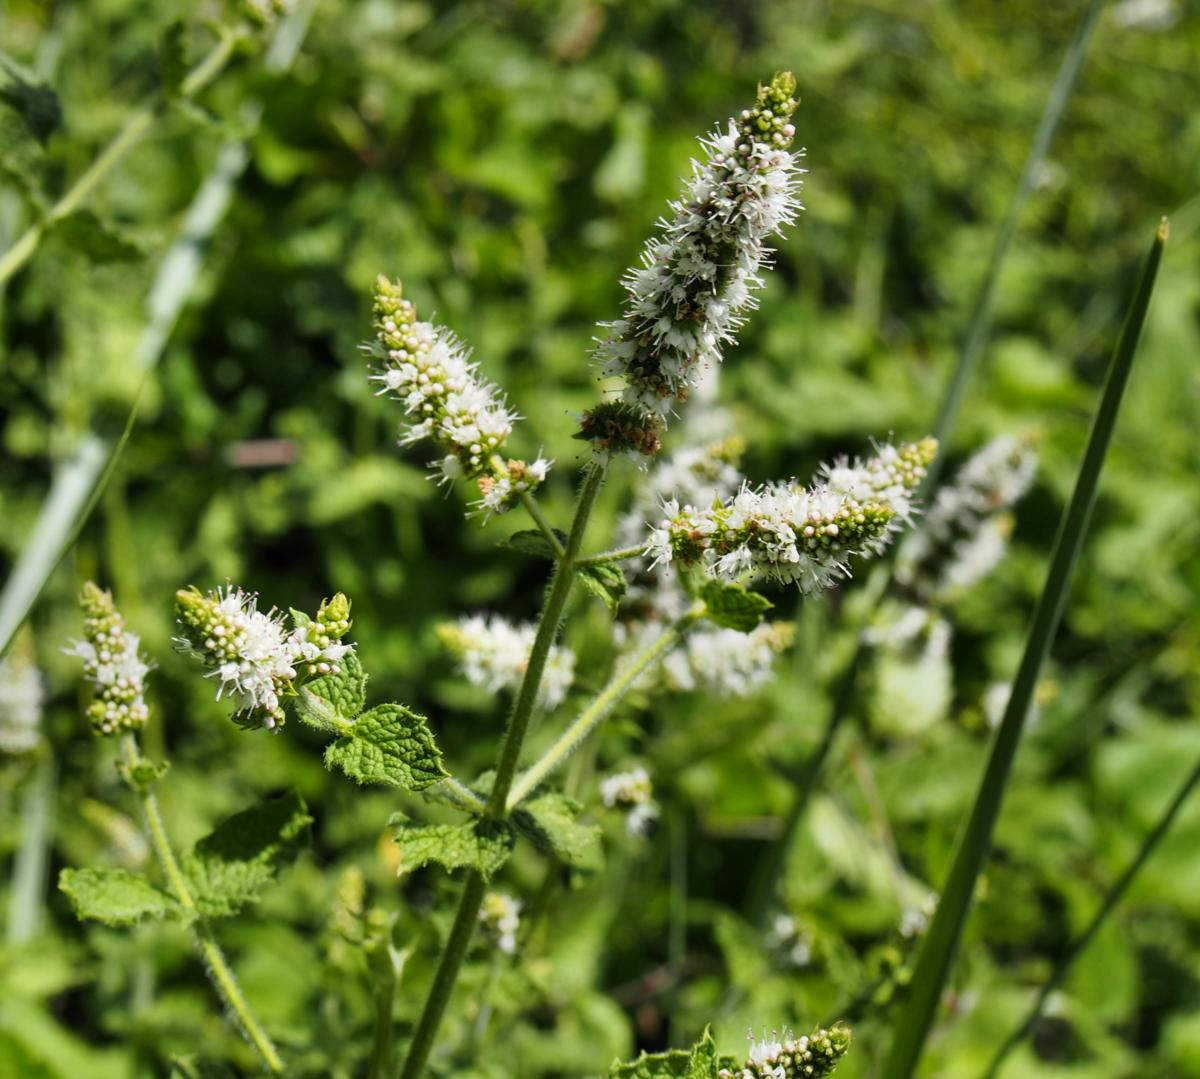 Mint, Apple flower